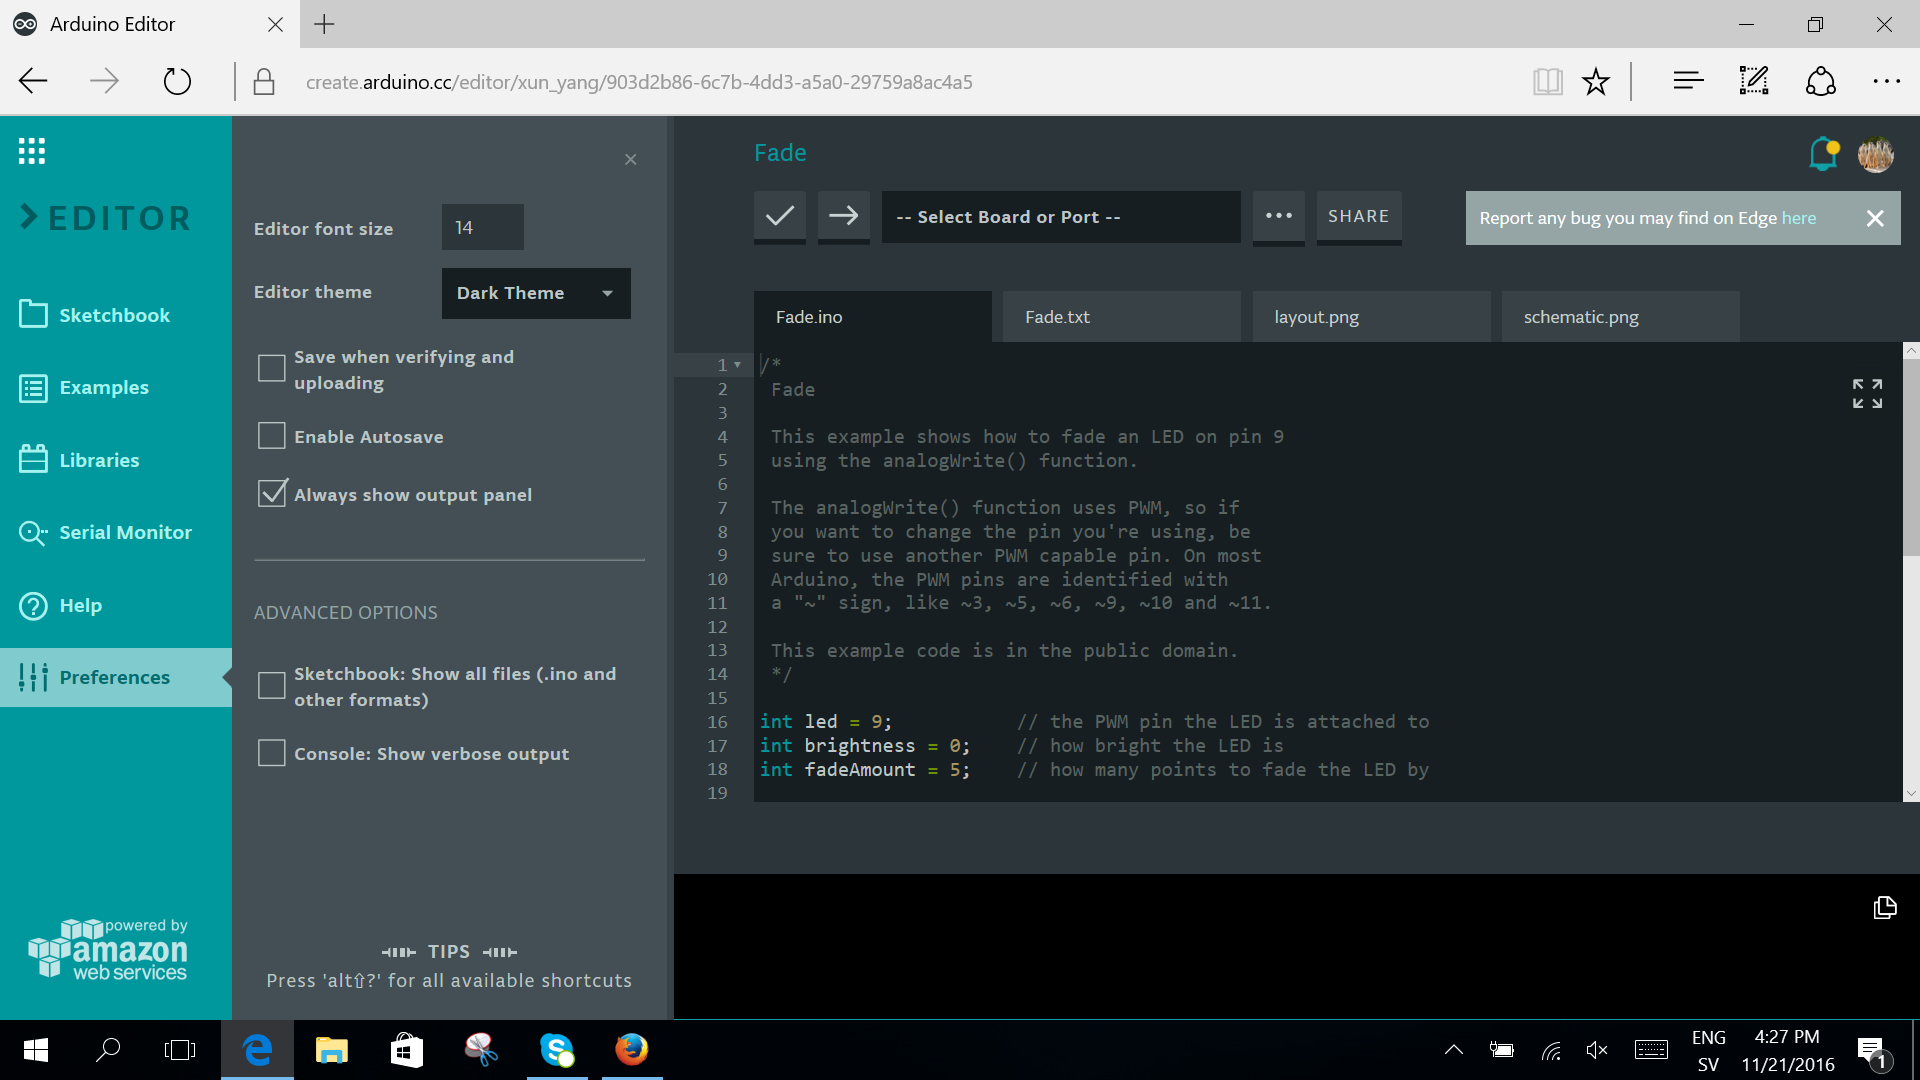 Arduino Blog » The Library Manager is now available on the Web Editor!